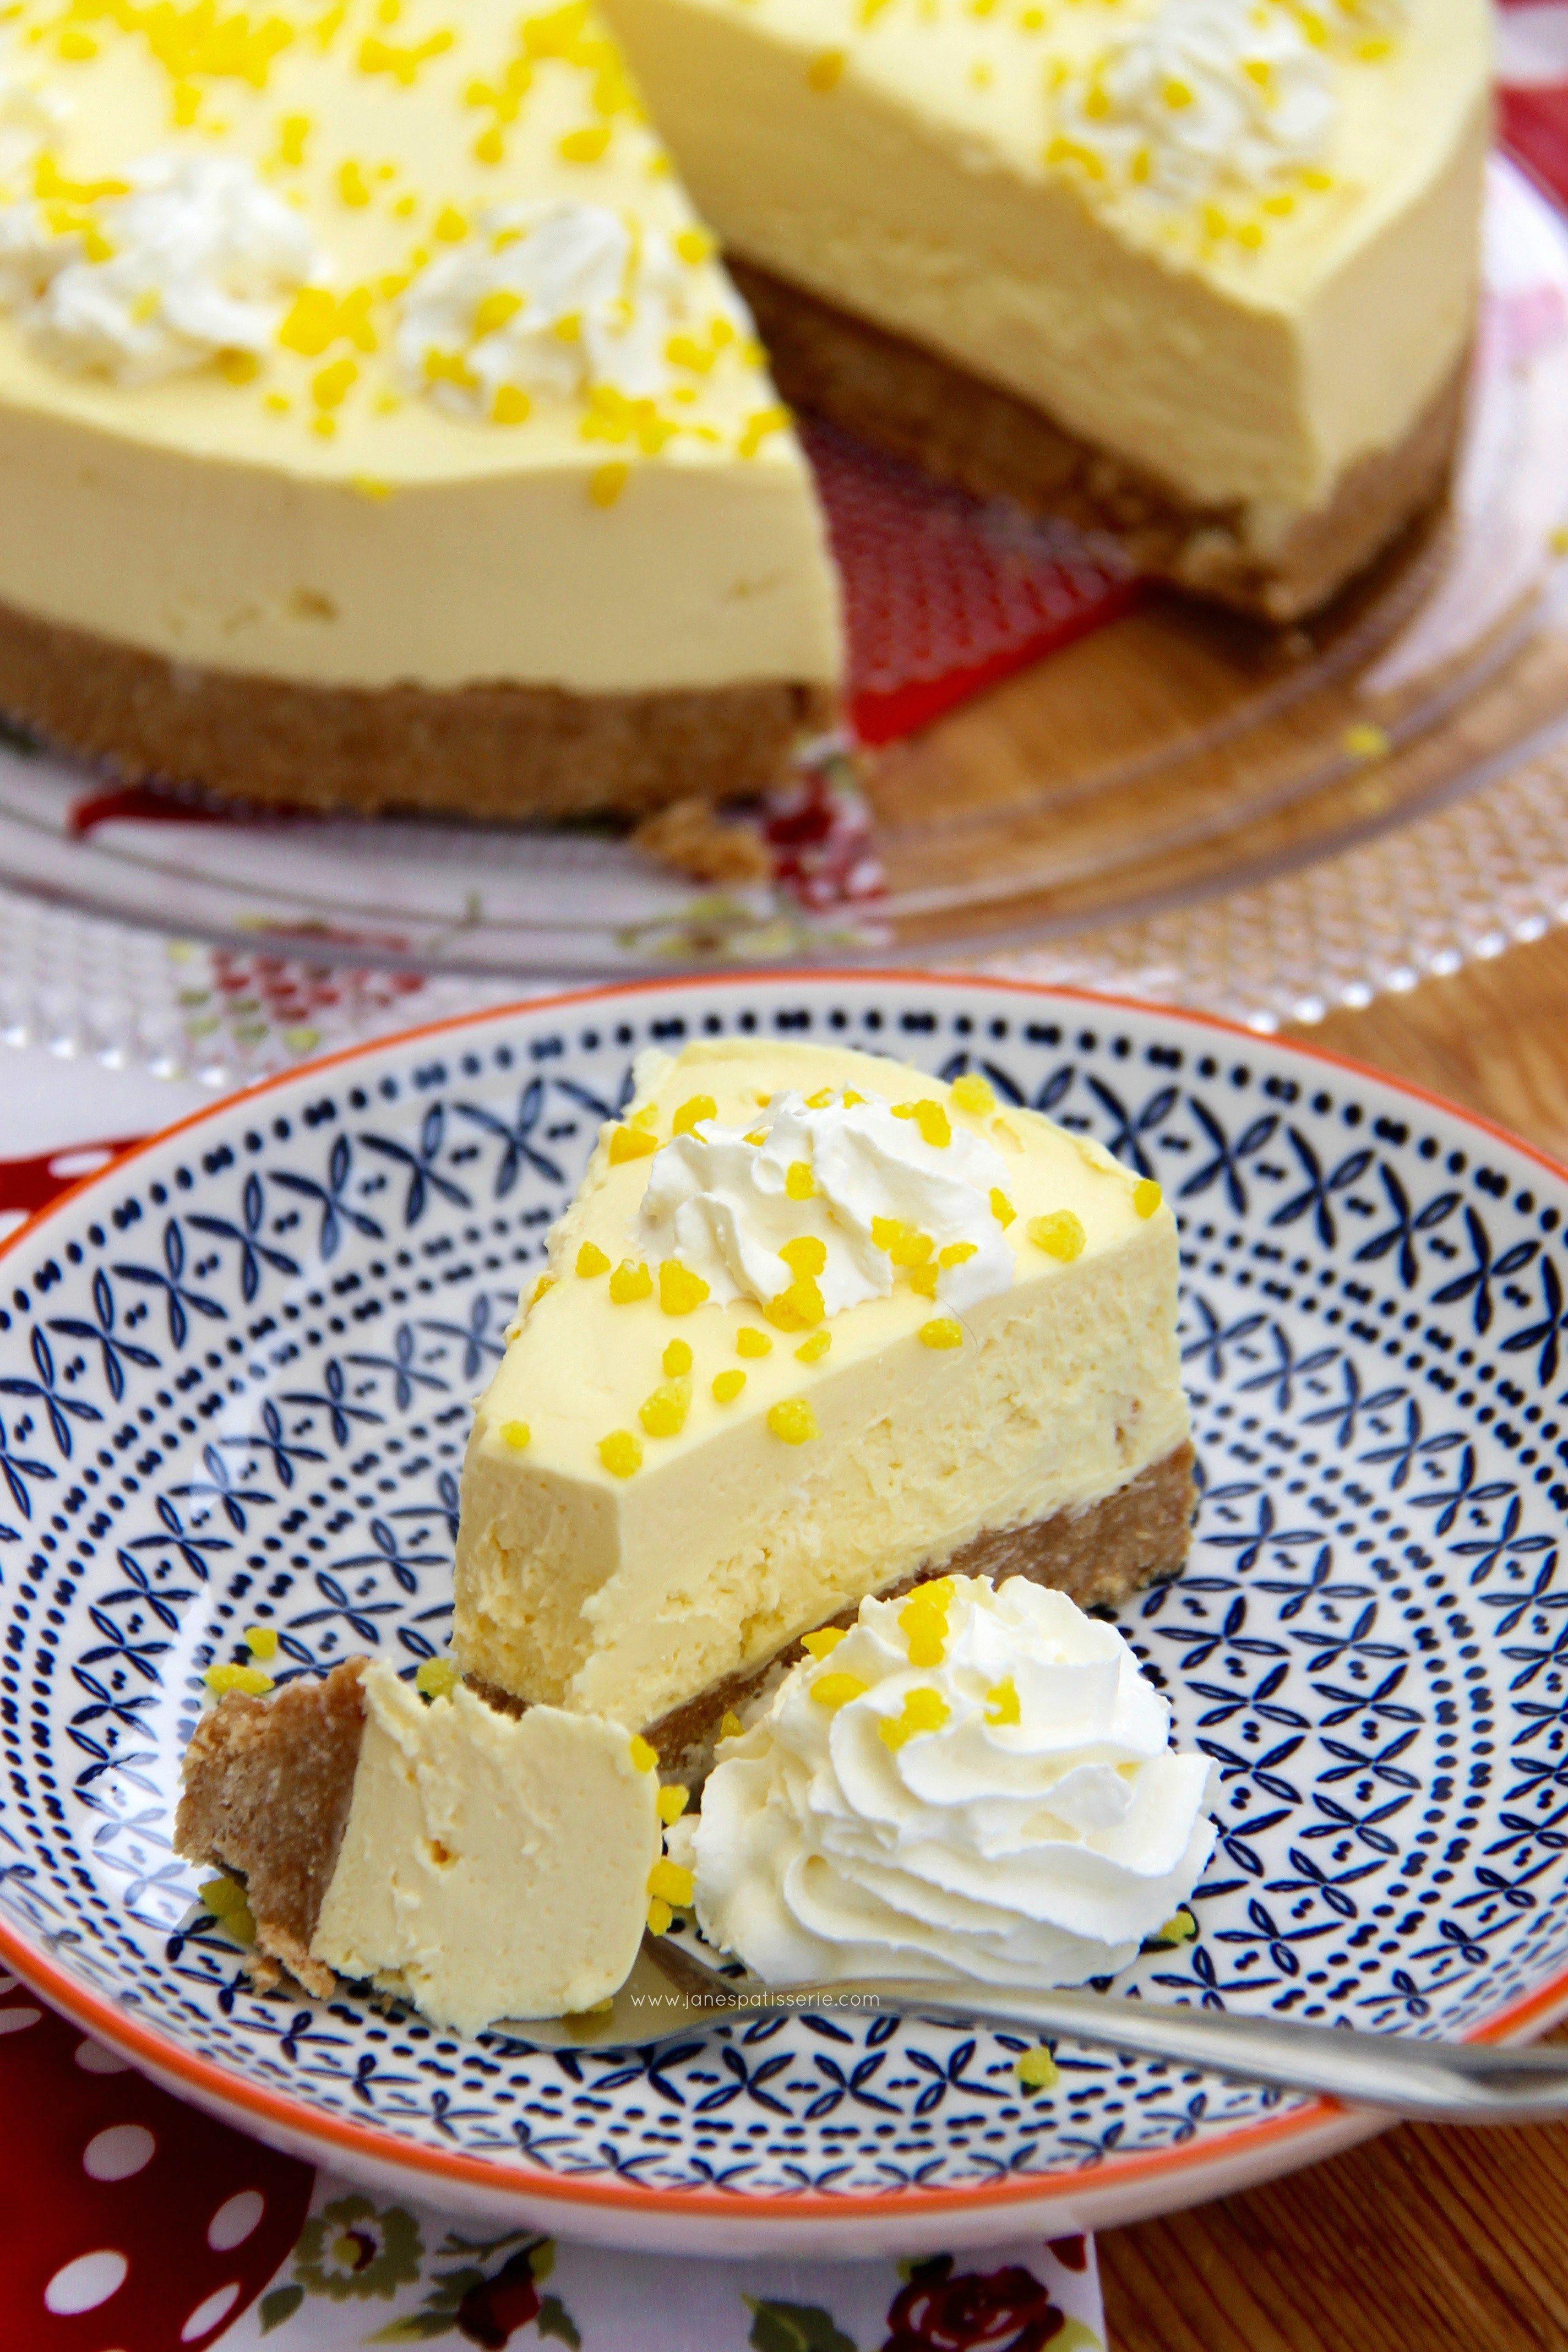 No bake lemon cheesecake flavoured with lemon drizzle icing sugar no bake lemon cheesecake flavoured with lemon drizzle icing sugar a heavenly dessert for everyone to enjoy the lovelies over at sugar crumbs sent me fandeluxe Images